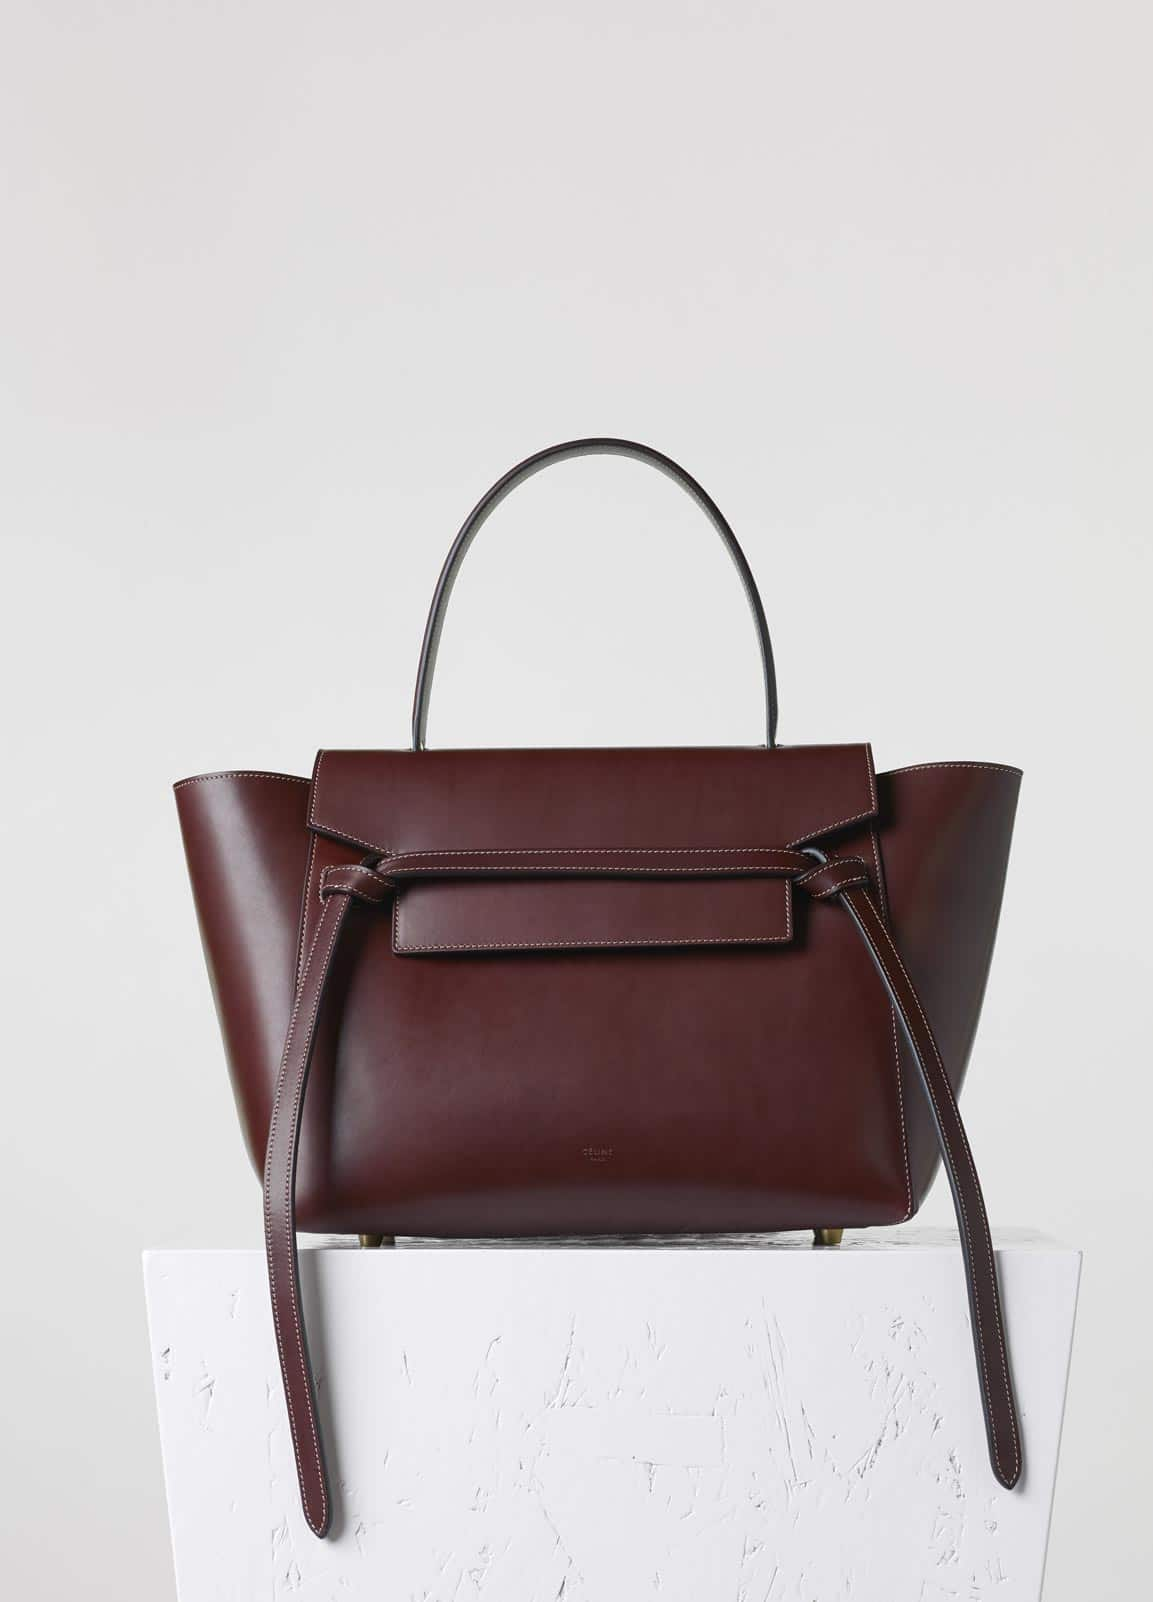 celine replica shoes - Celine Pre-Fall 2015 Bag Collection featuring new Sangle Hobo ...